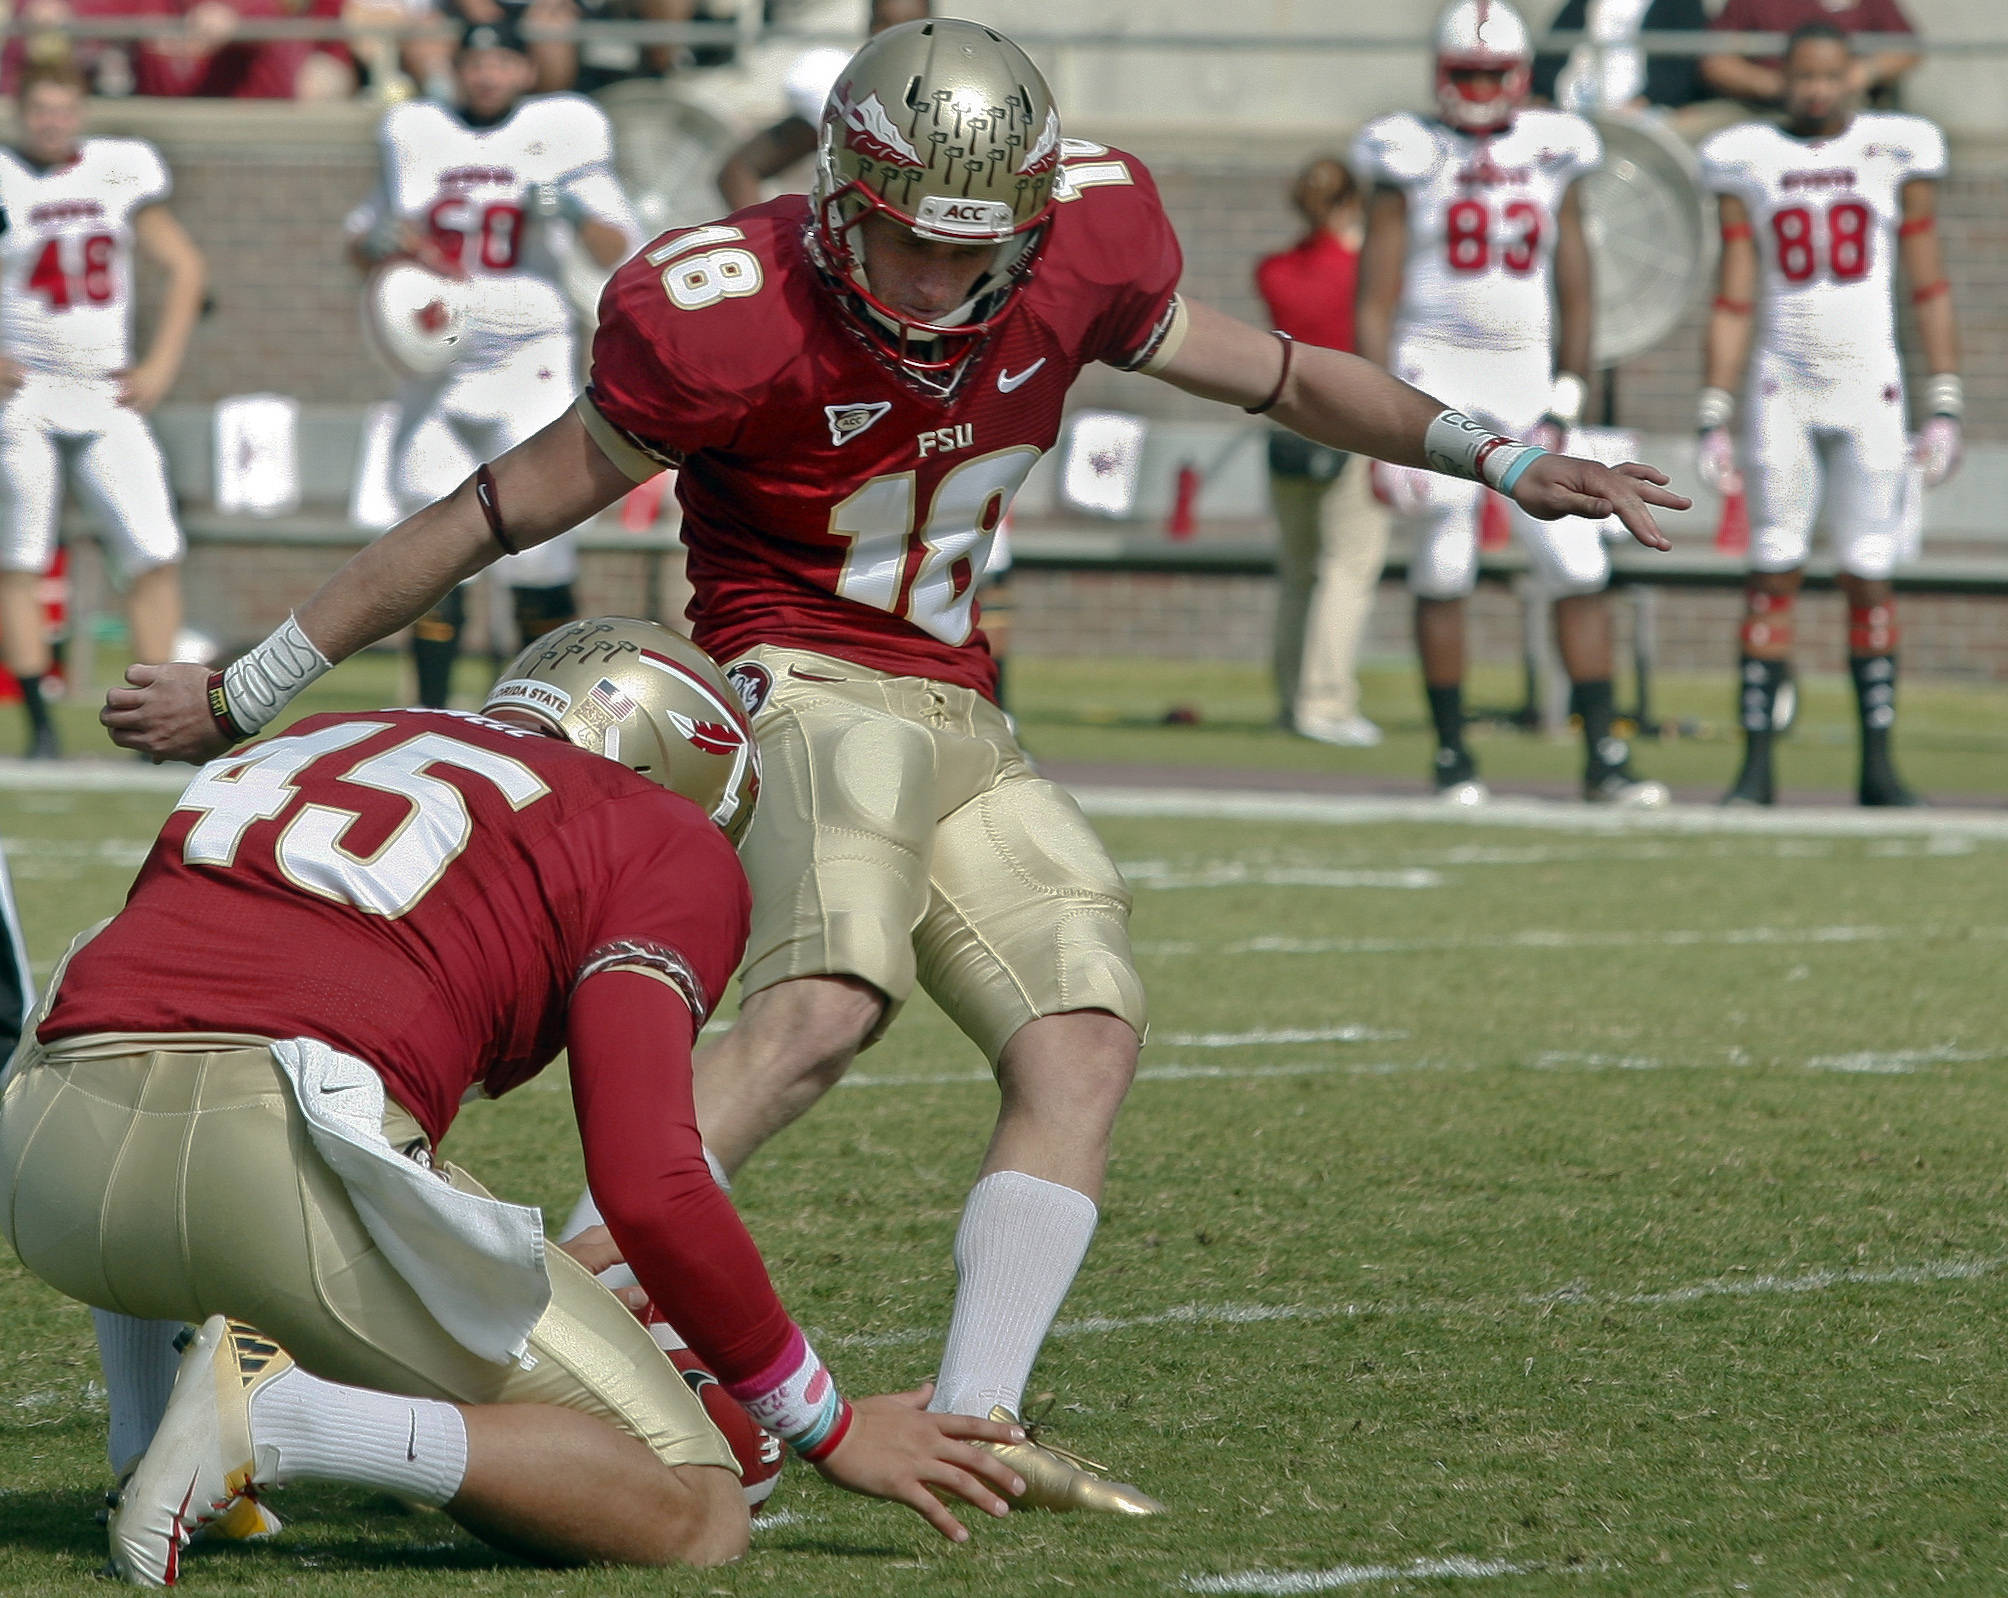 Florida State's Shawn Powell (45) holds the ball as kicker Dustin Hopkins (18) kicks a 43-yard field goal in the first quarter against North Carolina State. (AP Photo/Phil Sears)